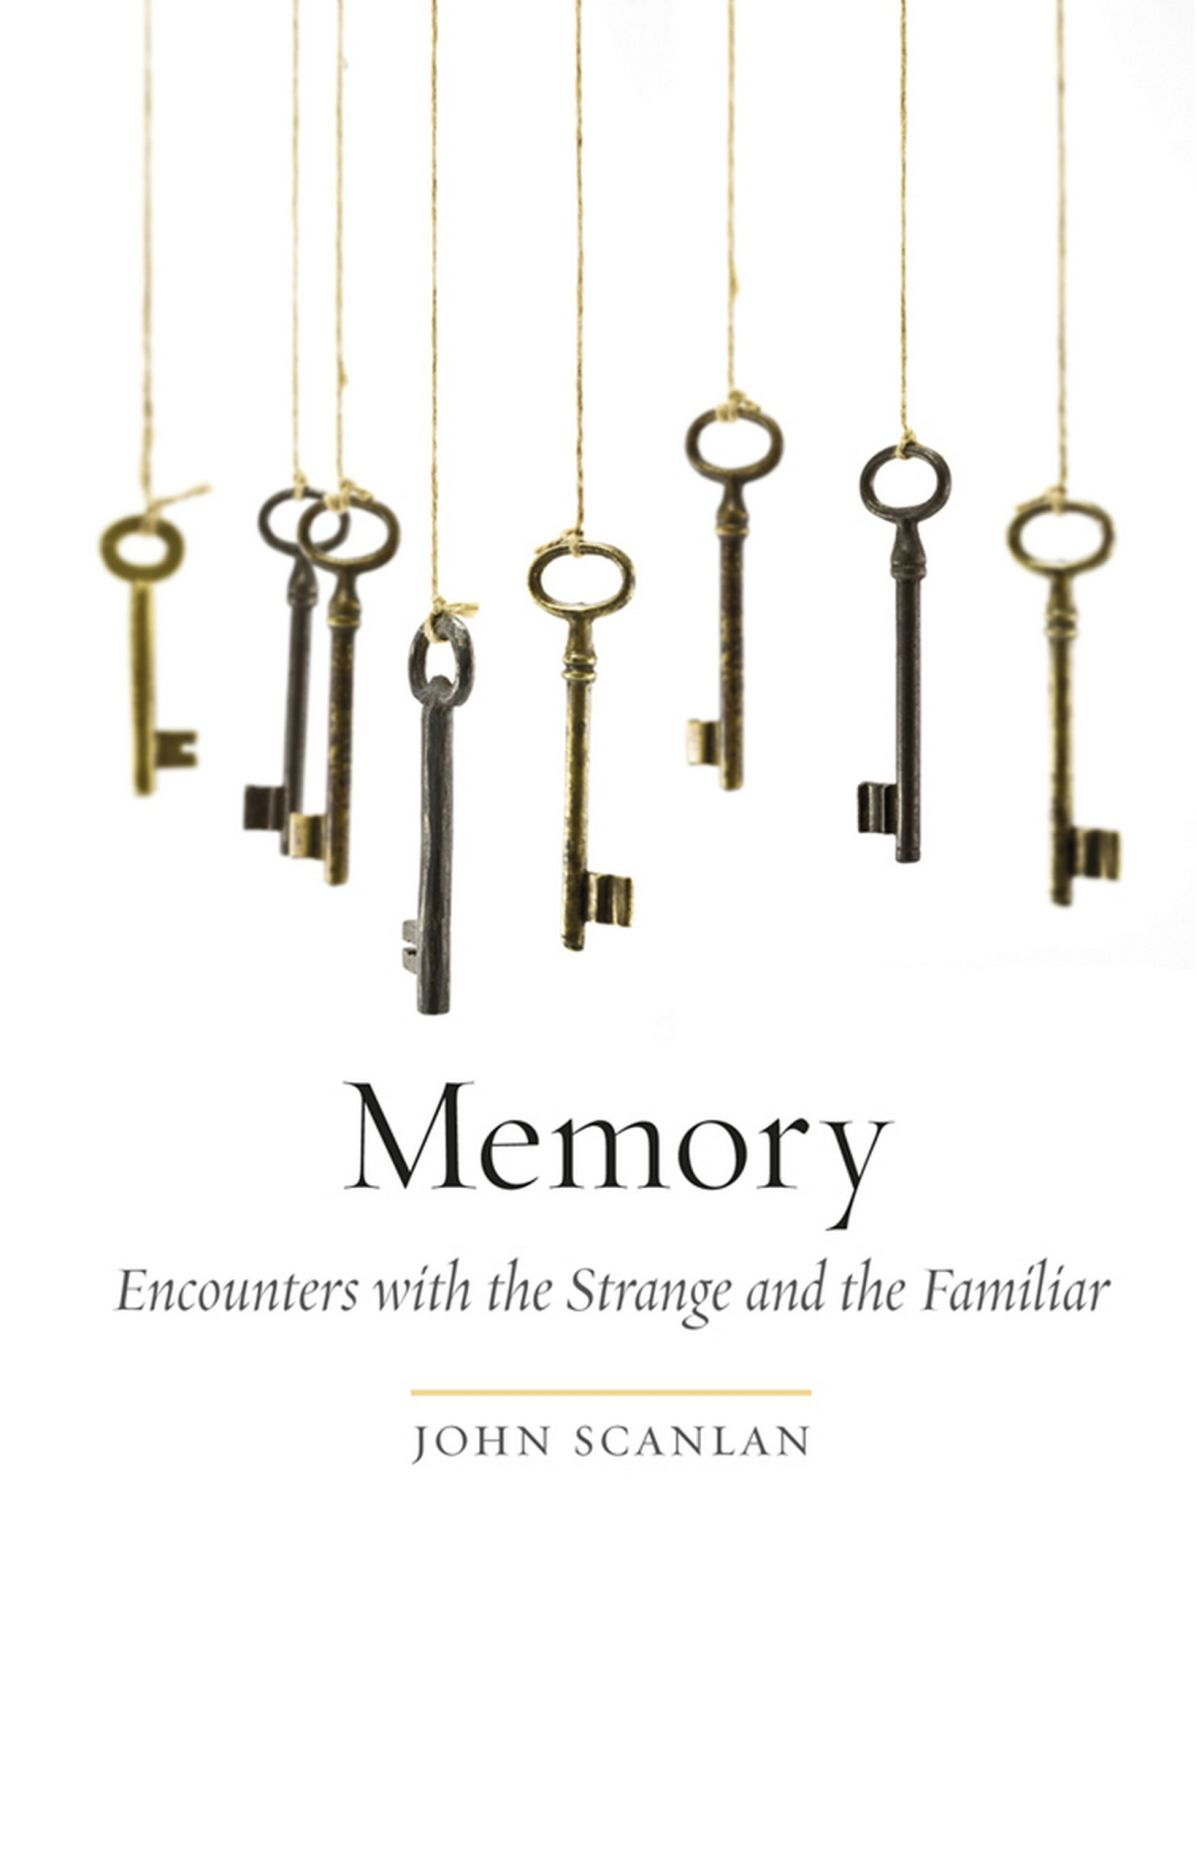 Memory: Encounters with the Strange and the Familiar